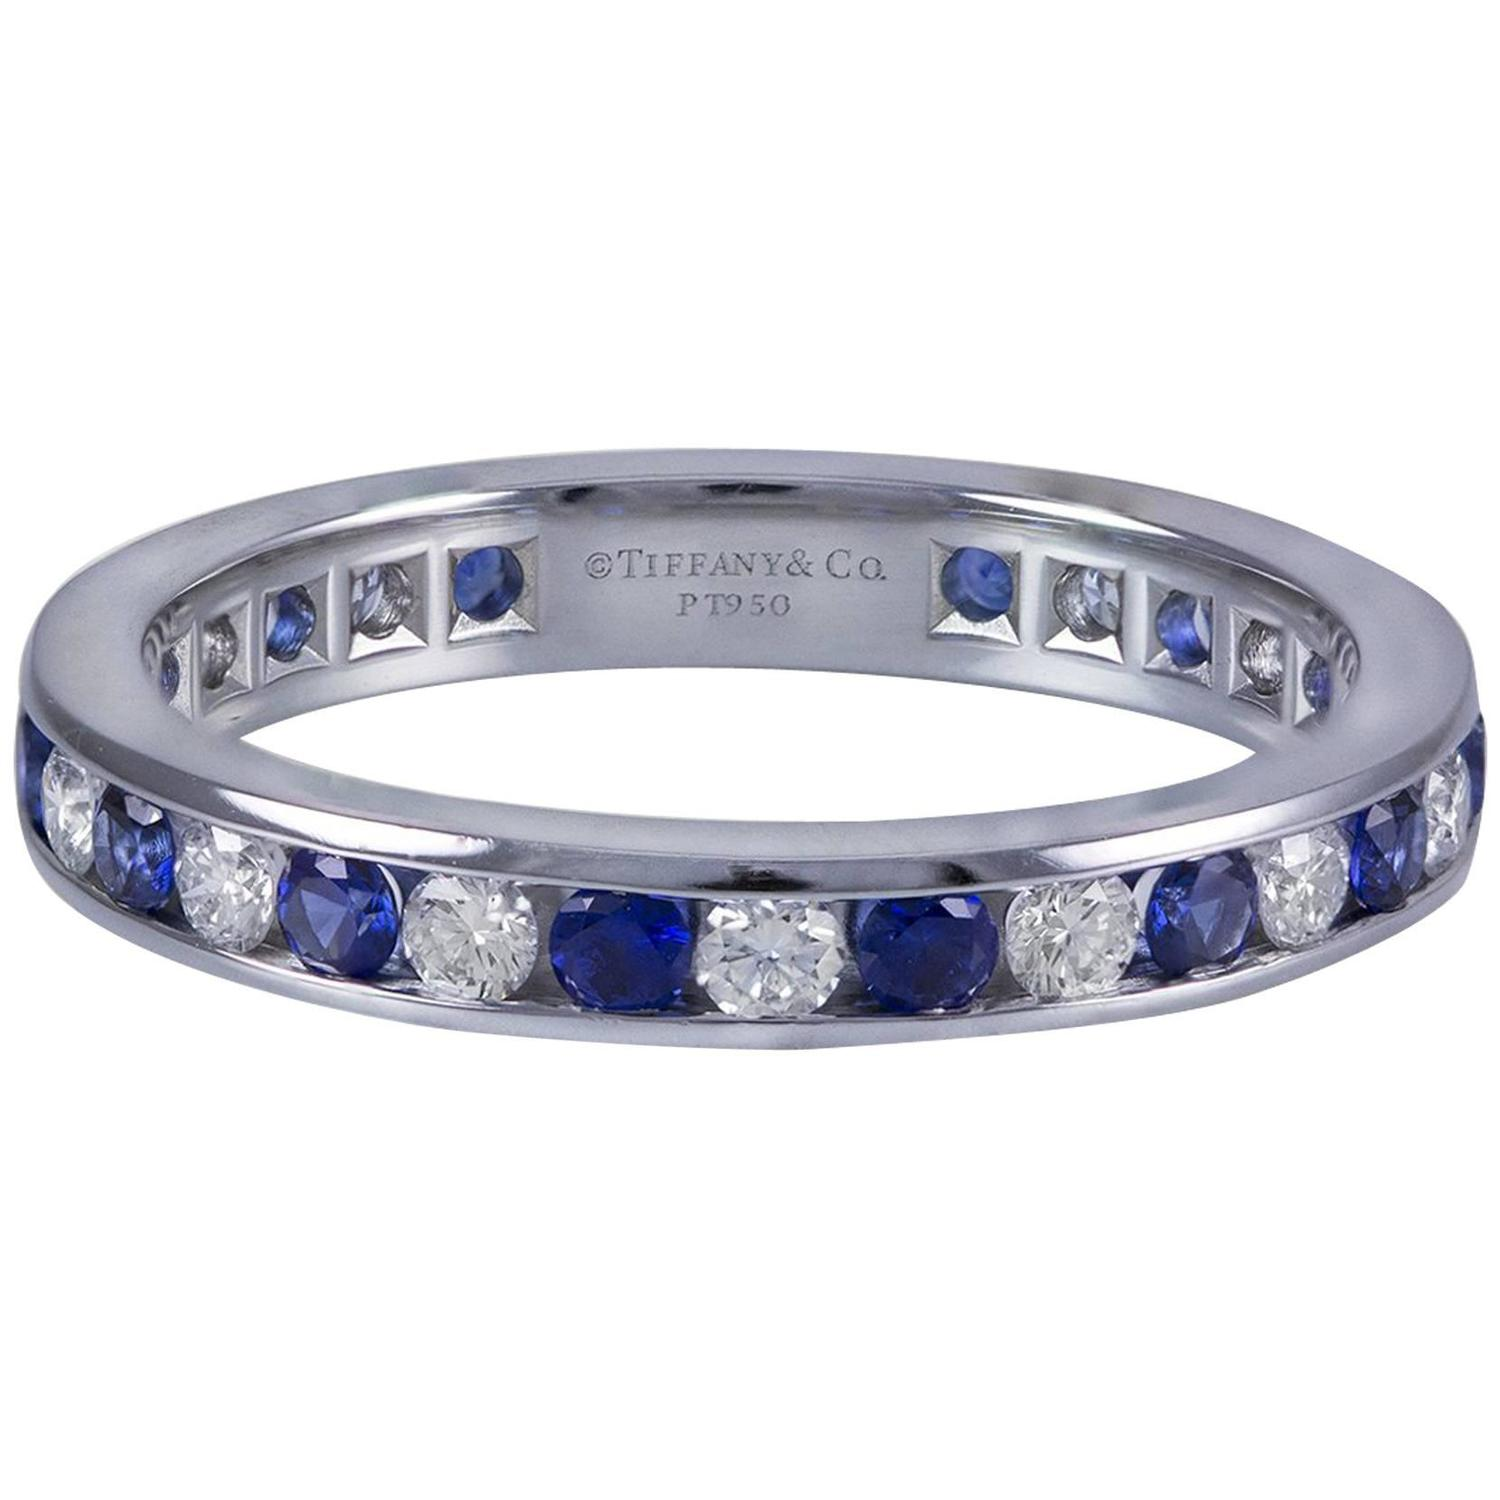 shared sapphire band wedding alternating product platinum diamond star jb and prong